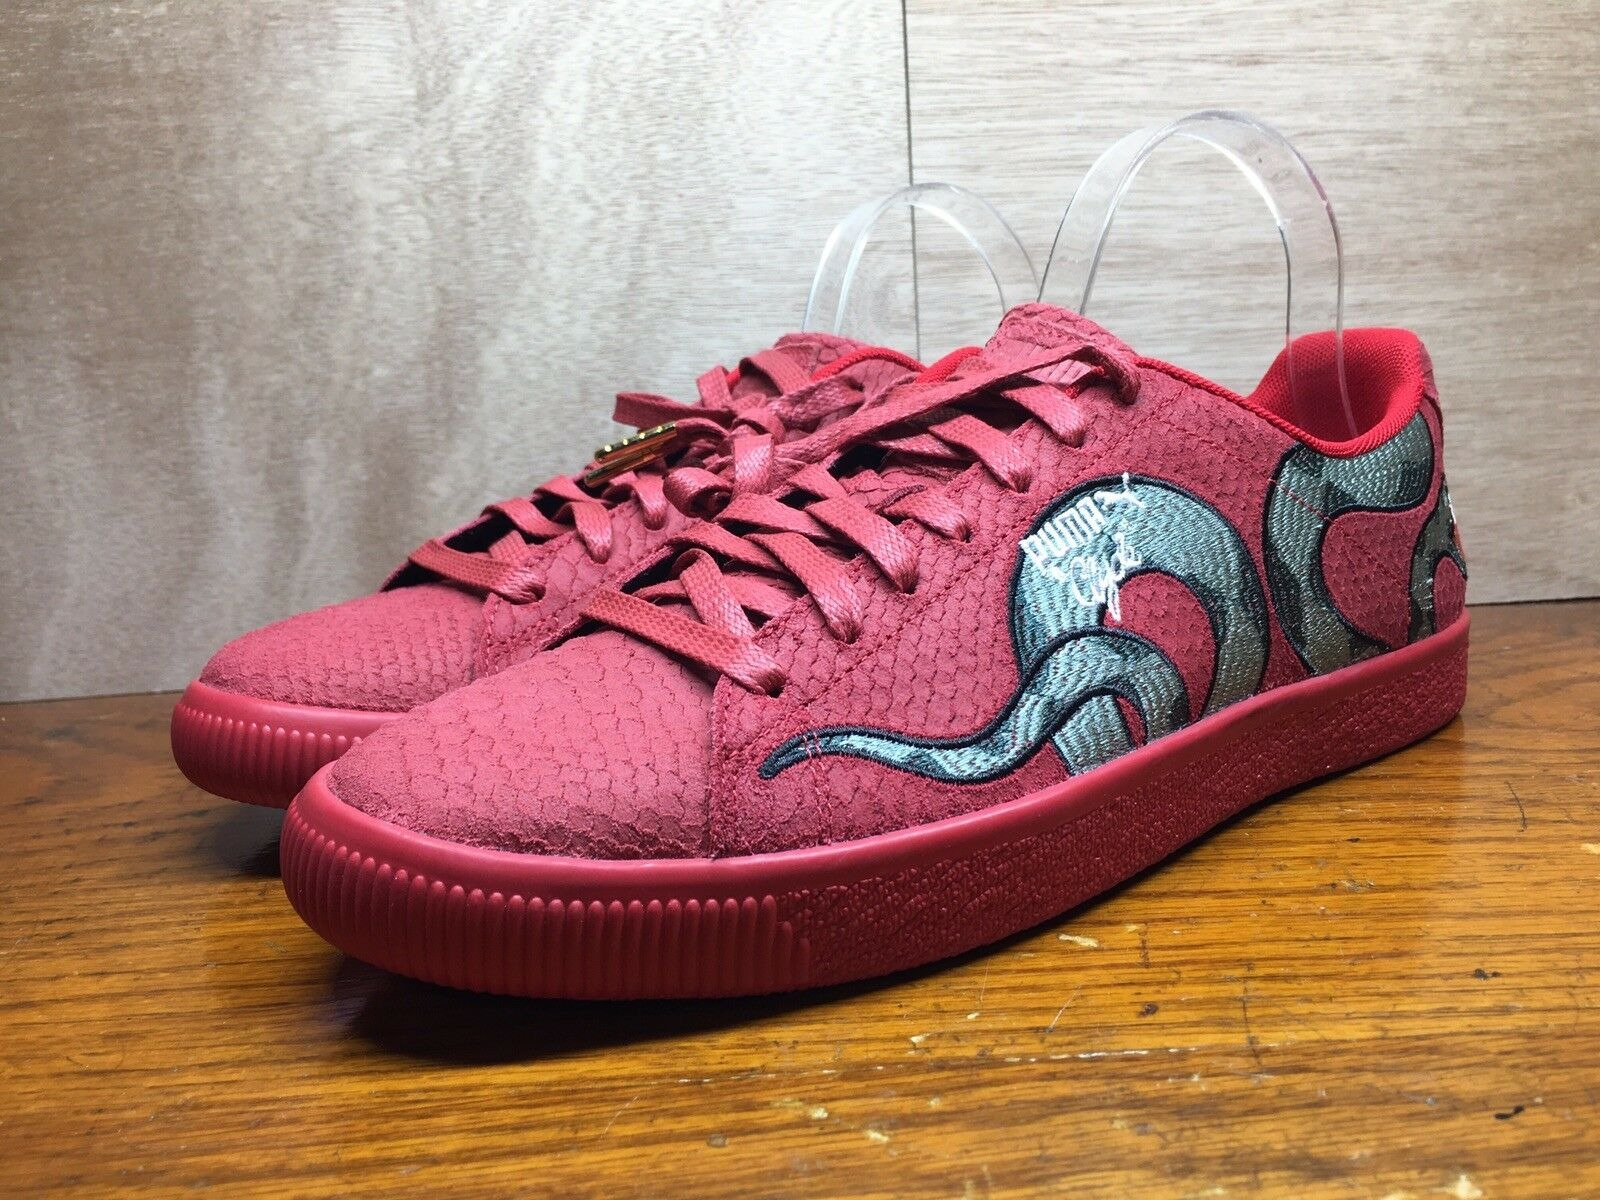 Puma Men's Clyde Snake Embroidered Red Size 9.5